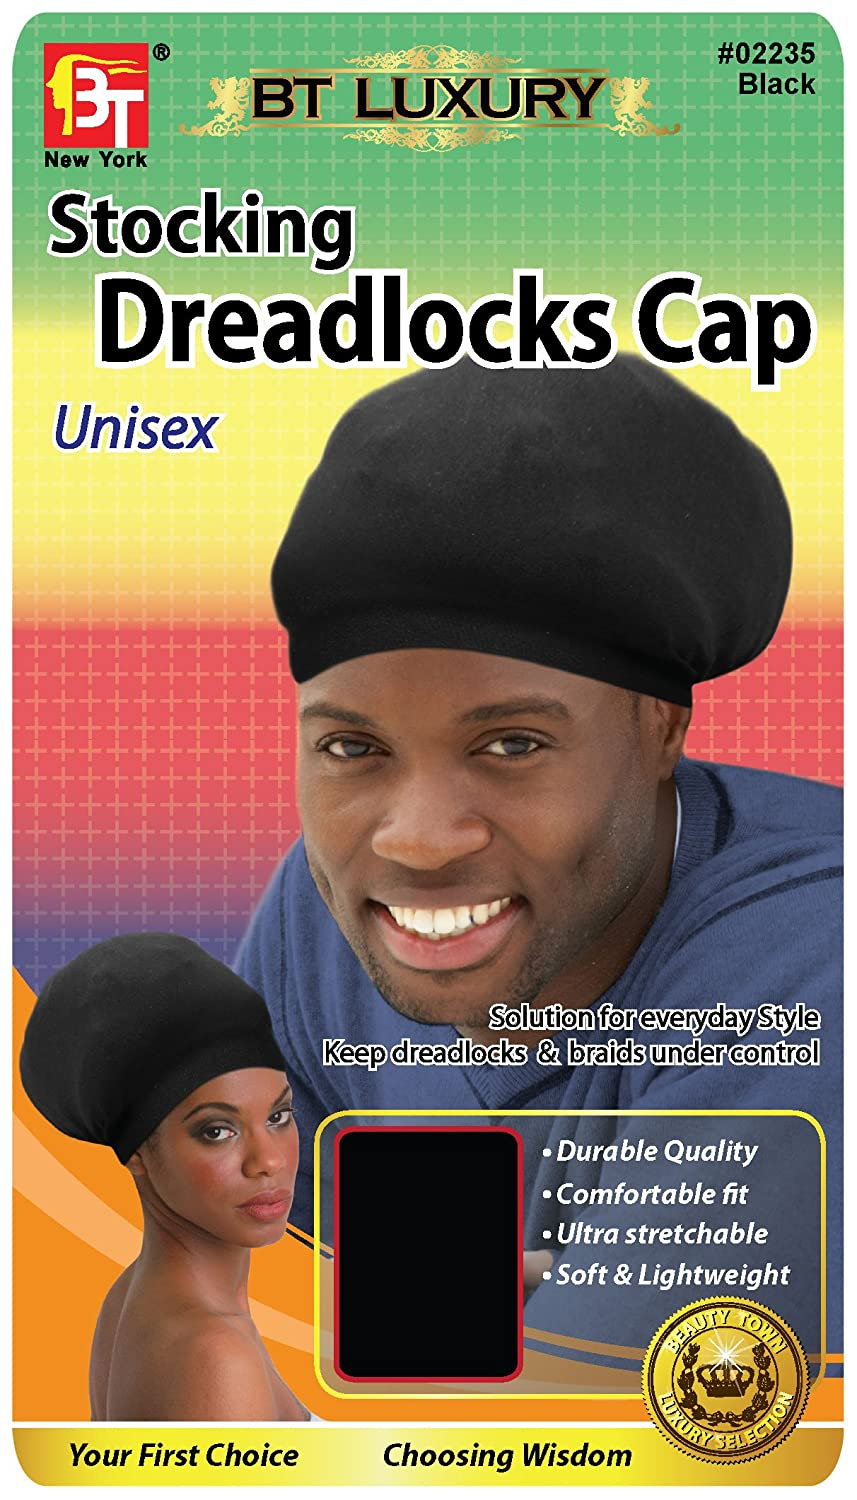 durable super stretchy soft stays on your head lightweight Dark Brown stretchable Comfortable fit Stocking Dreadlocks Cap unisex